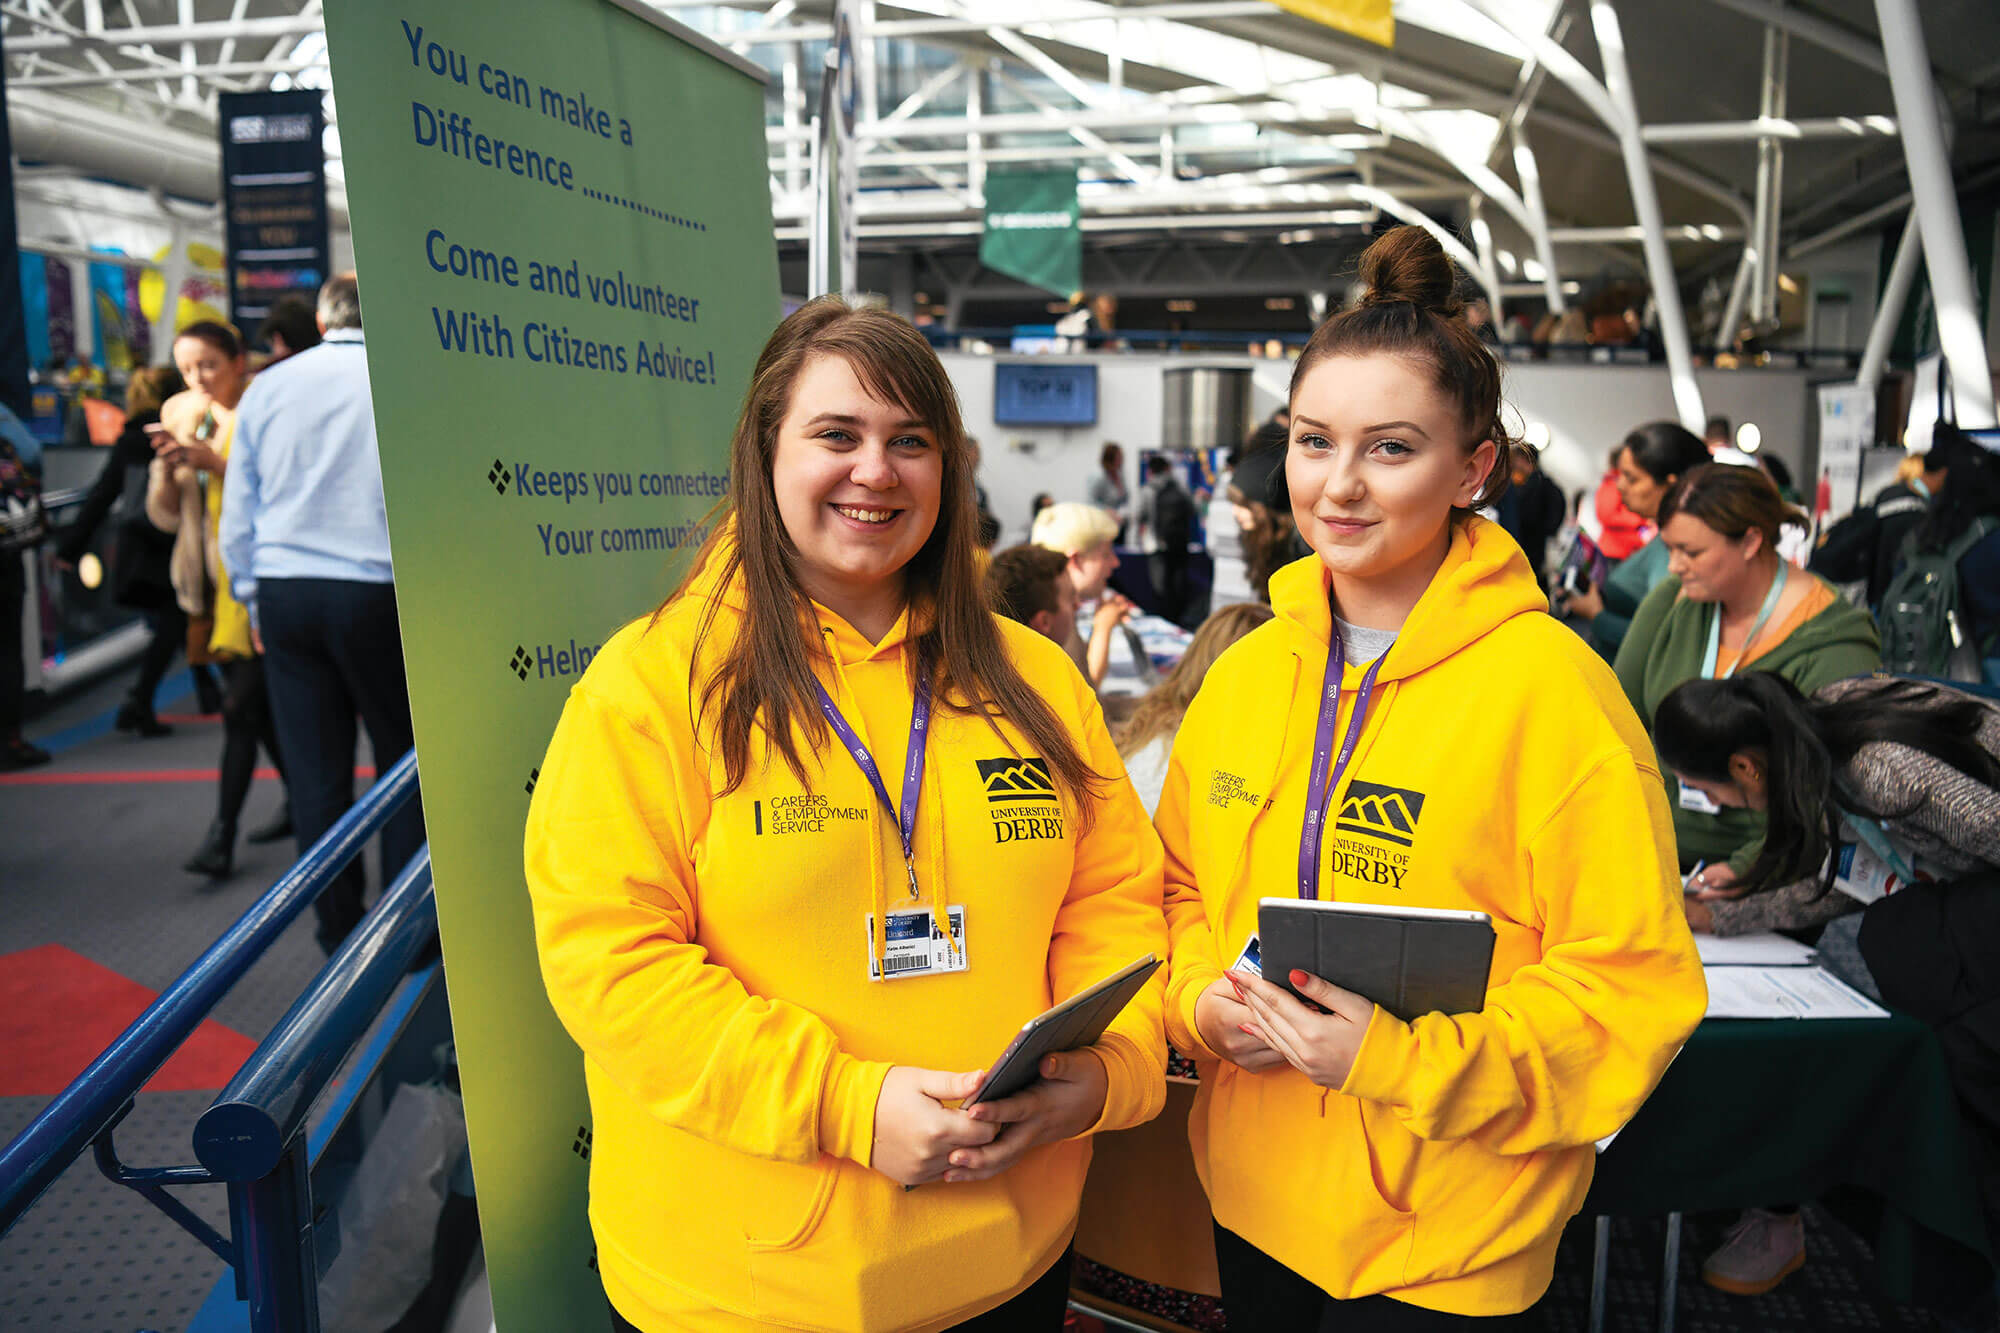 Two students wearing yellow hoodies and holding iPads at a Volunteering Fair in the atrium